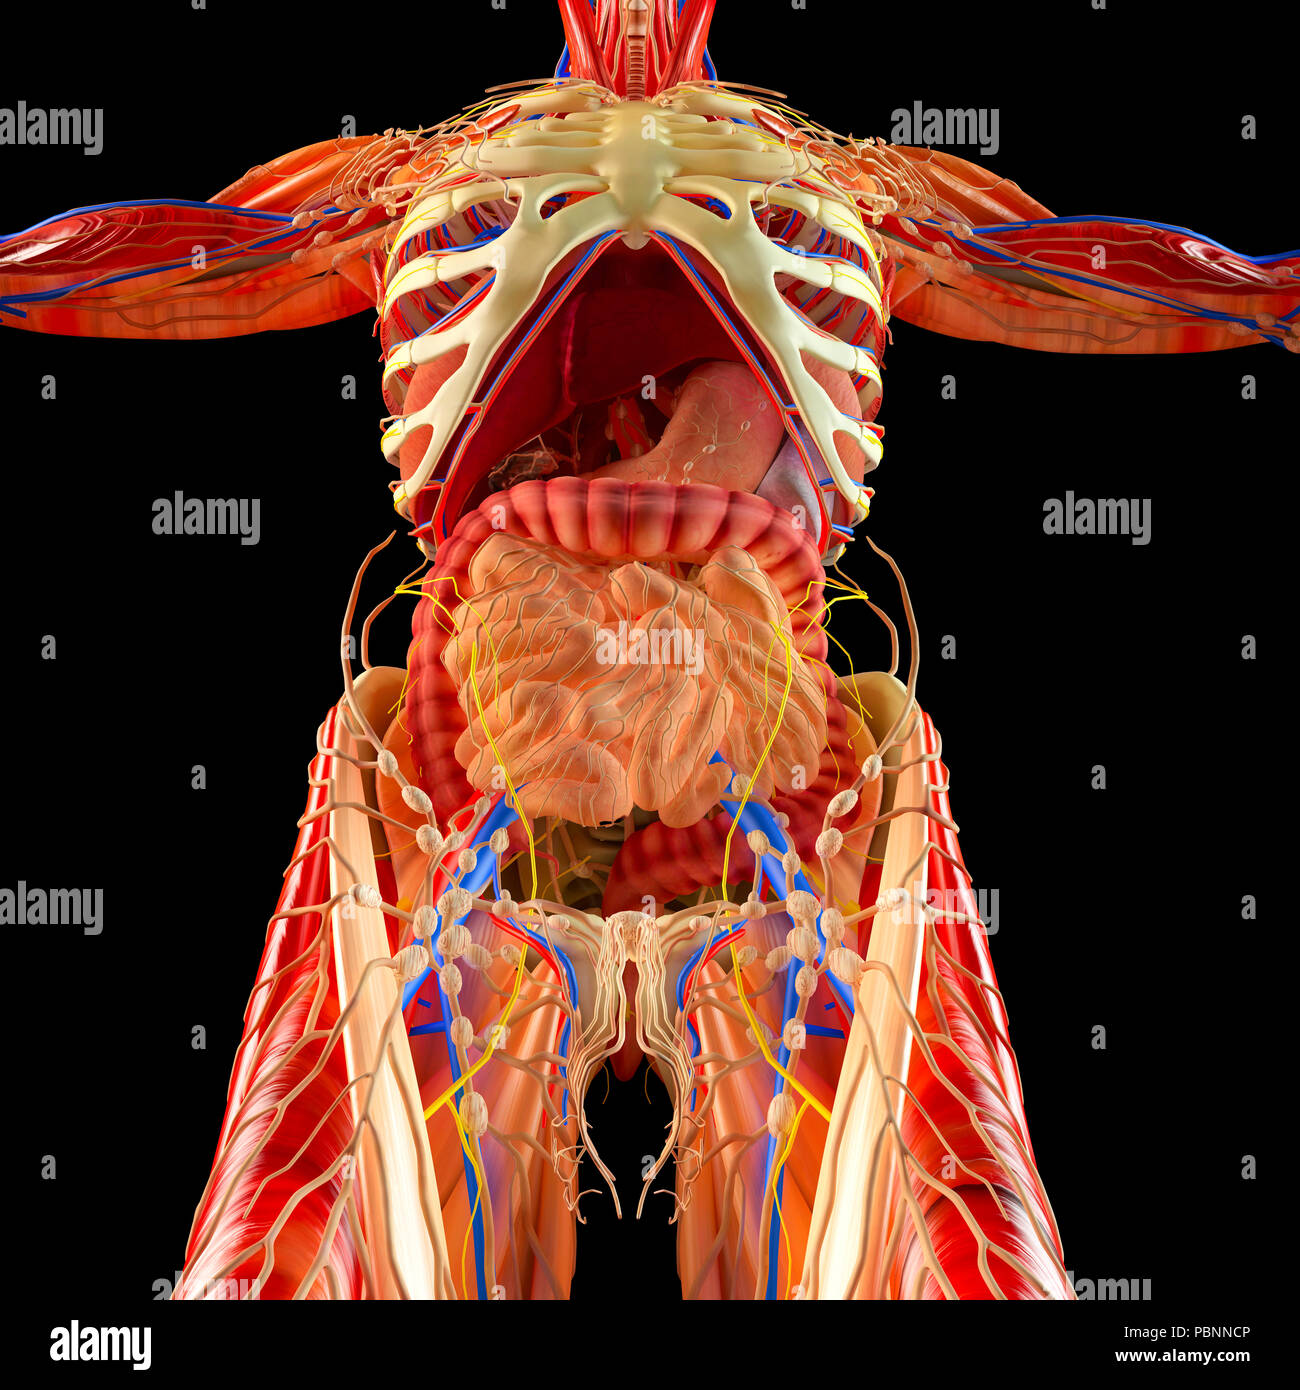 Corps Humain Systeme Musculaire Les Organes Internes Le Systeme